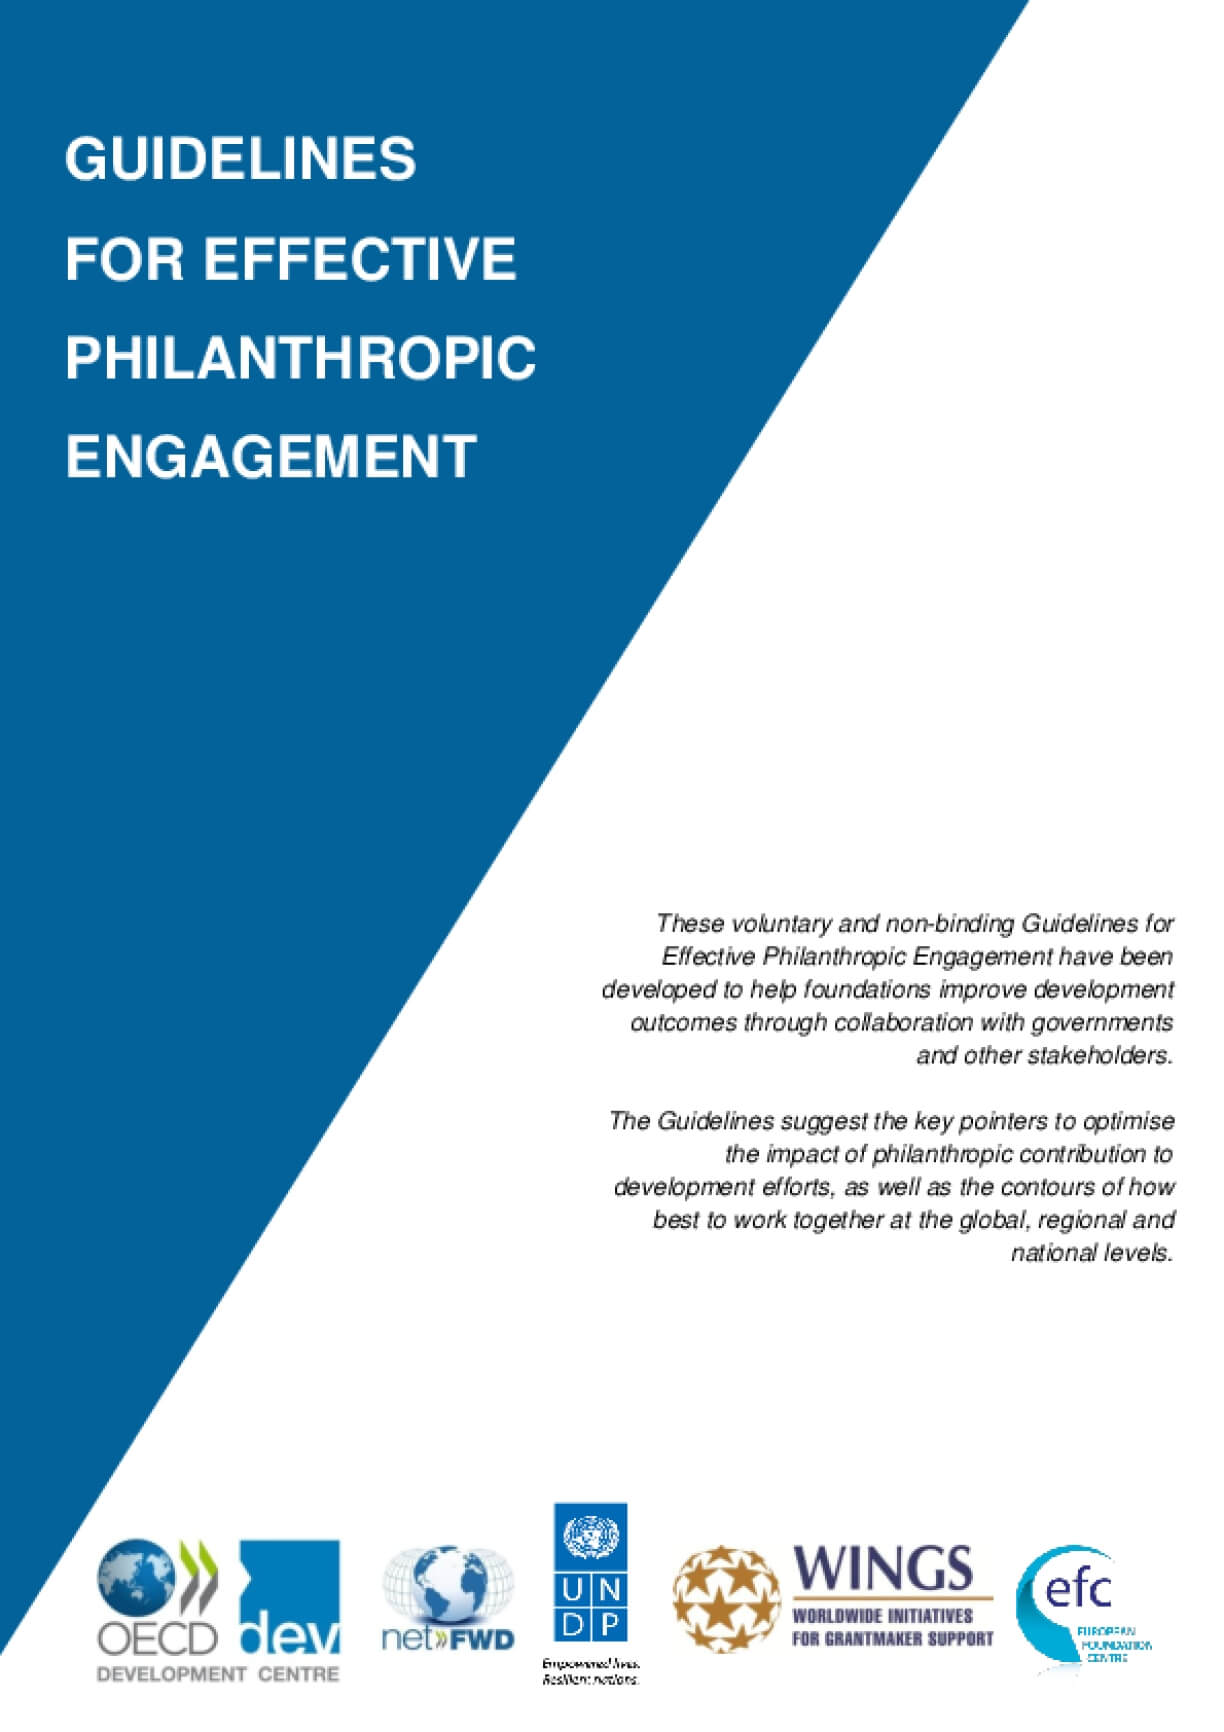 Guidelines for Effective Philanthropic Engagement